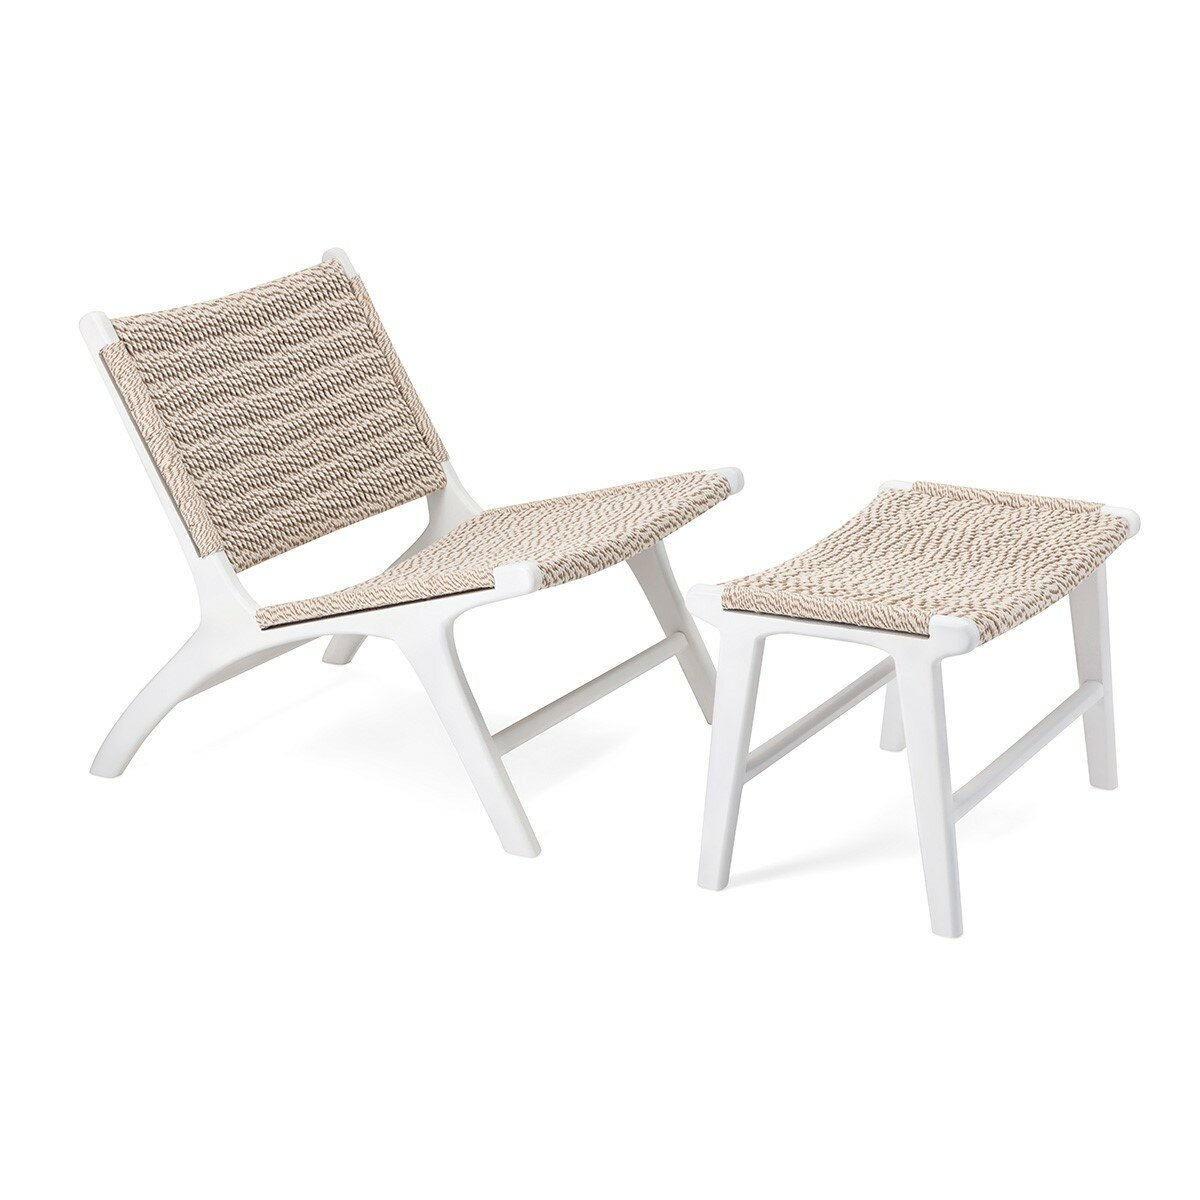 Pleasant Gerhardina Woven Teak Lounge Chair And Ottoman Pabps2019 Chair Design Images Pabps2019Com